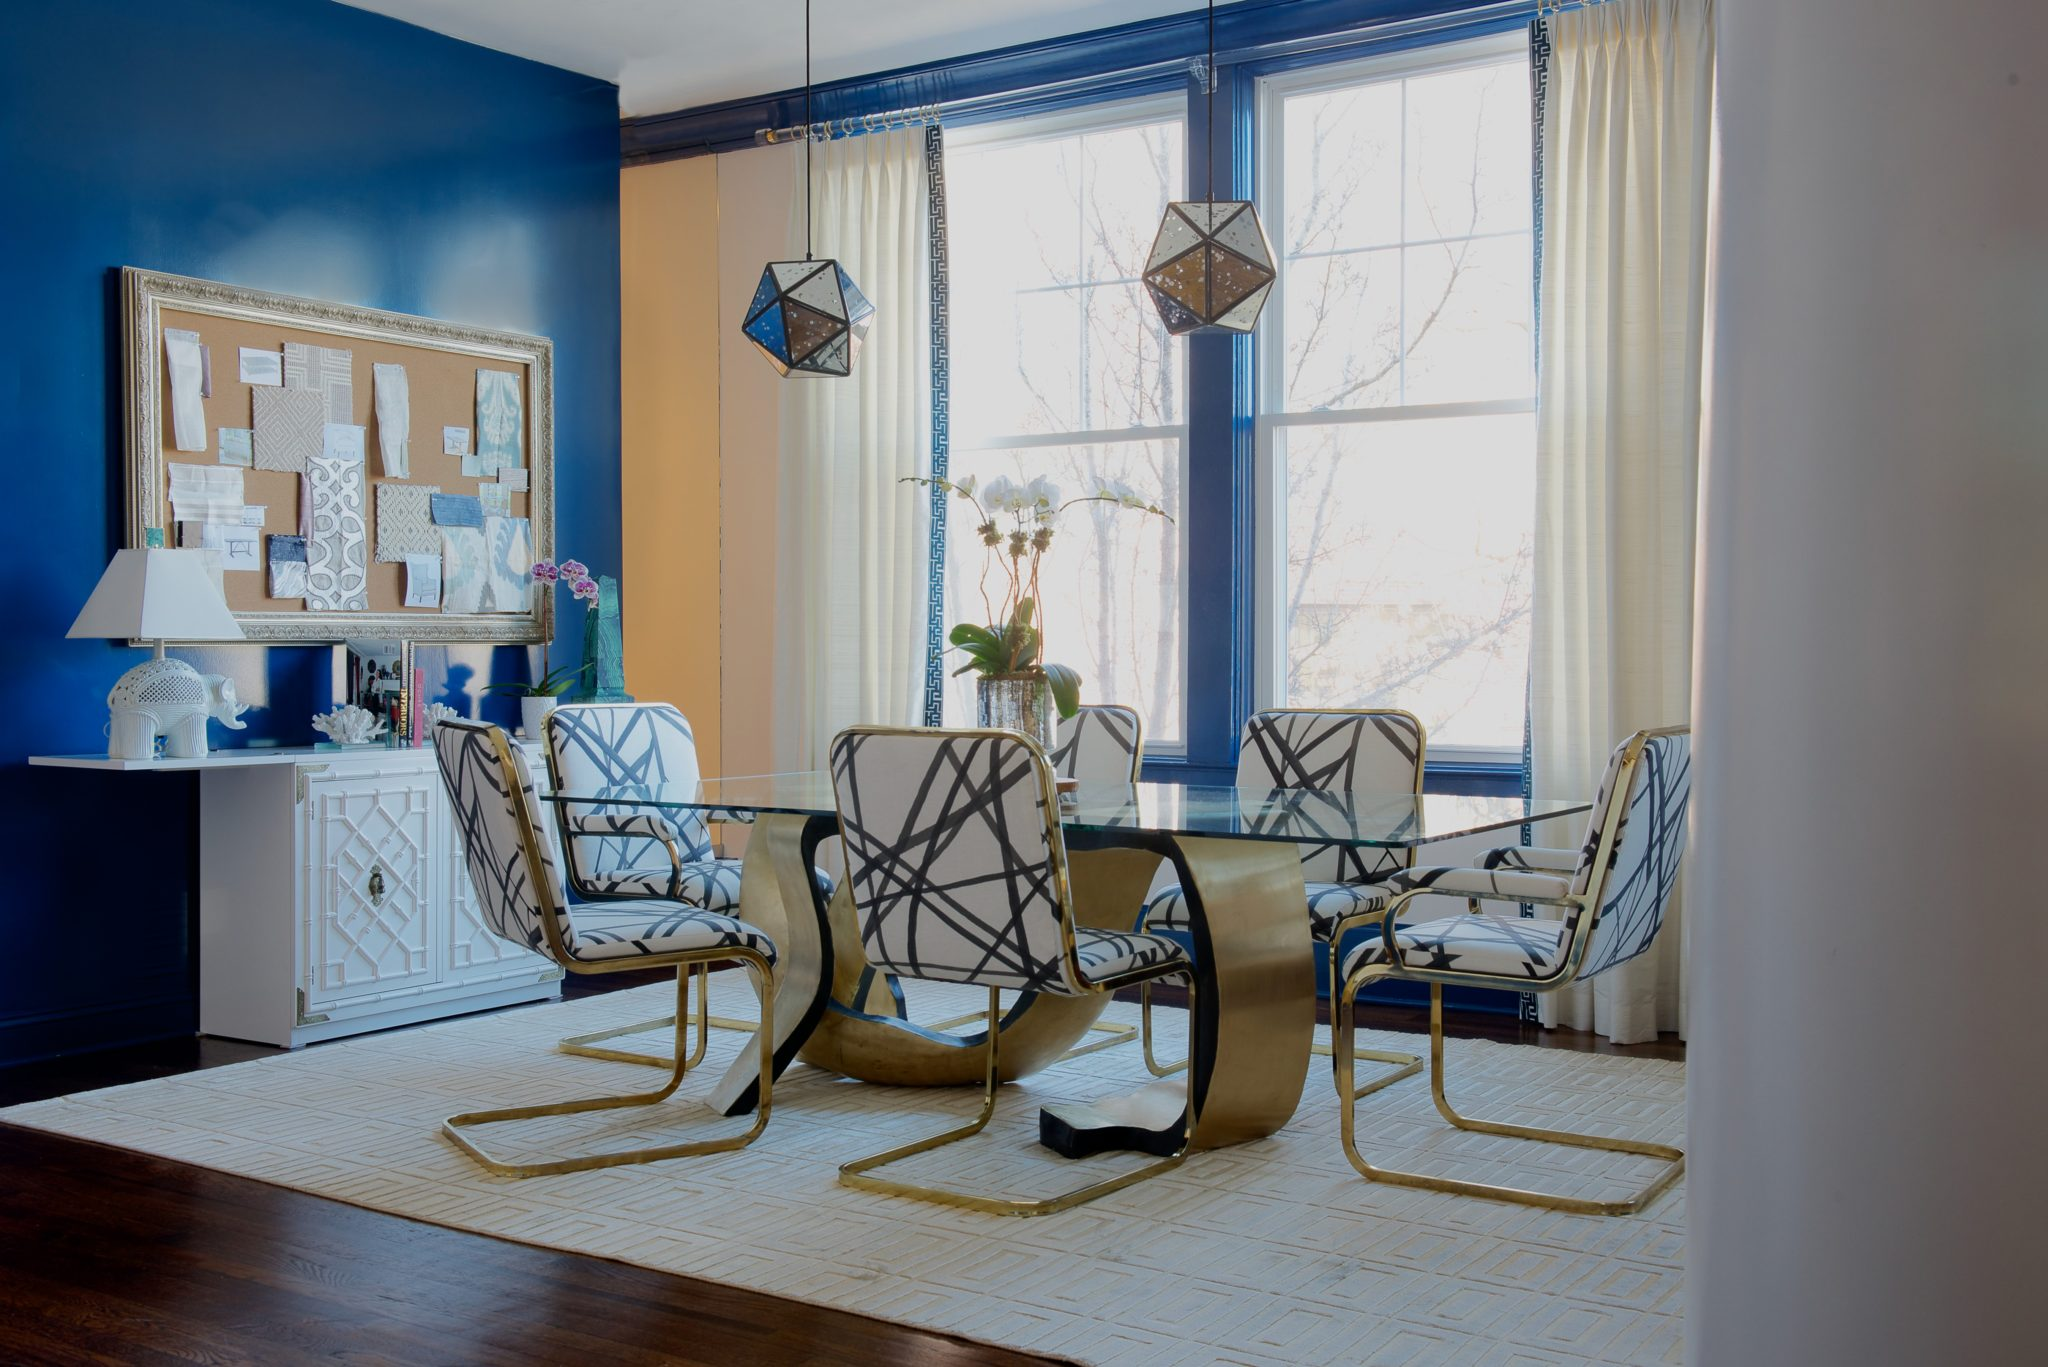 """Rajni Alex Design   Scarsdale, New York   """"My vision for the office was to have a studio with an eclectic vibe mixed in with edgy style. Our studio needed to be warm, welcoming, but above all, very memorable. I wanted to create a space that had the 'wow'factor, so that when the clients walked in they would know right away what my style is, and what we can do for them.""""  — Rajni Alex, Rajni Alex Design"""